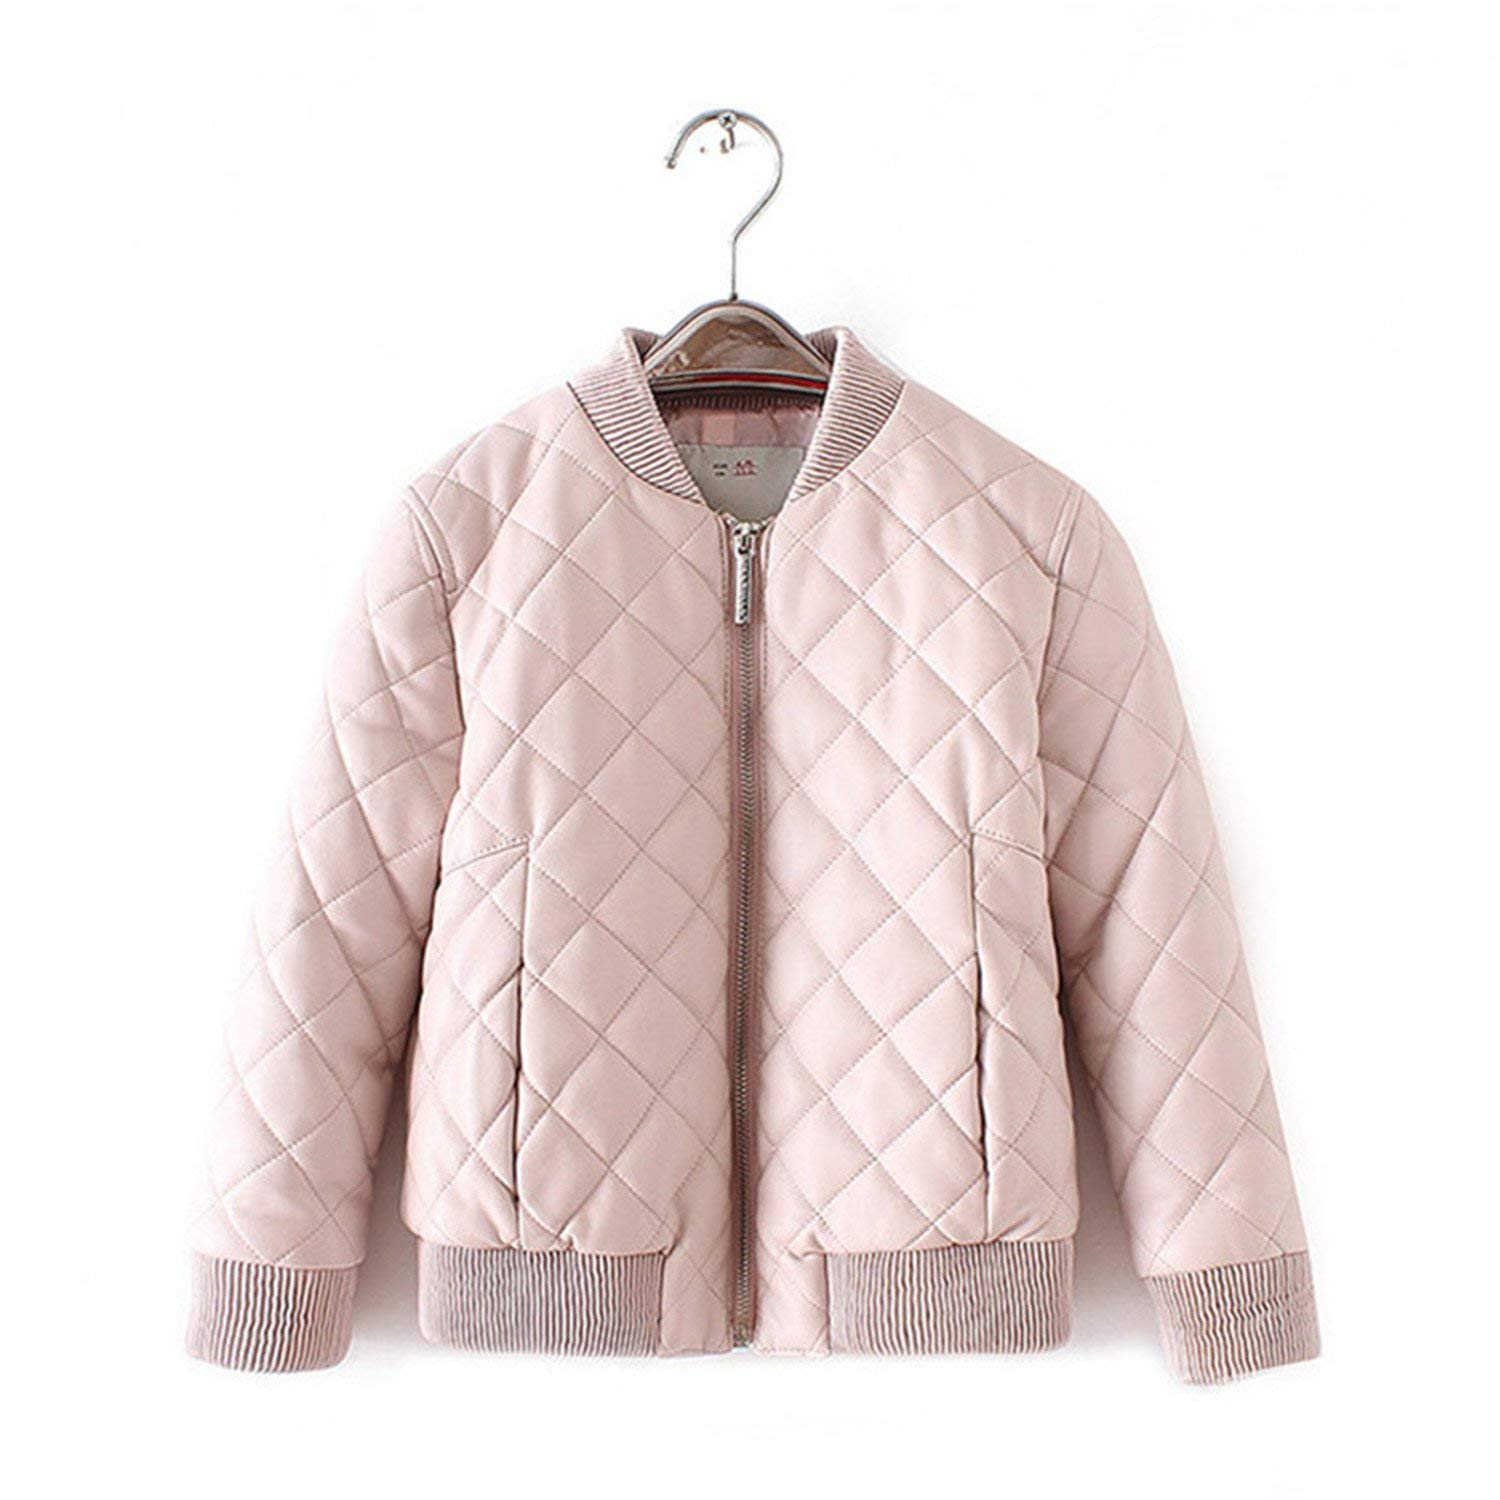 85f2adb1e Get Quotations · Winter Jacket Girls Unisex Thick Leather Jacket Boys Coats Children  Toddler Infant Kids Baby Clothes